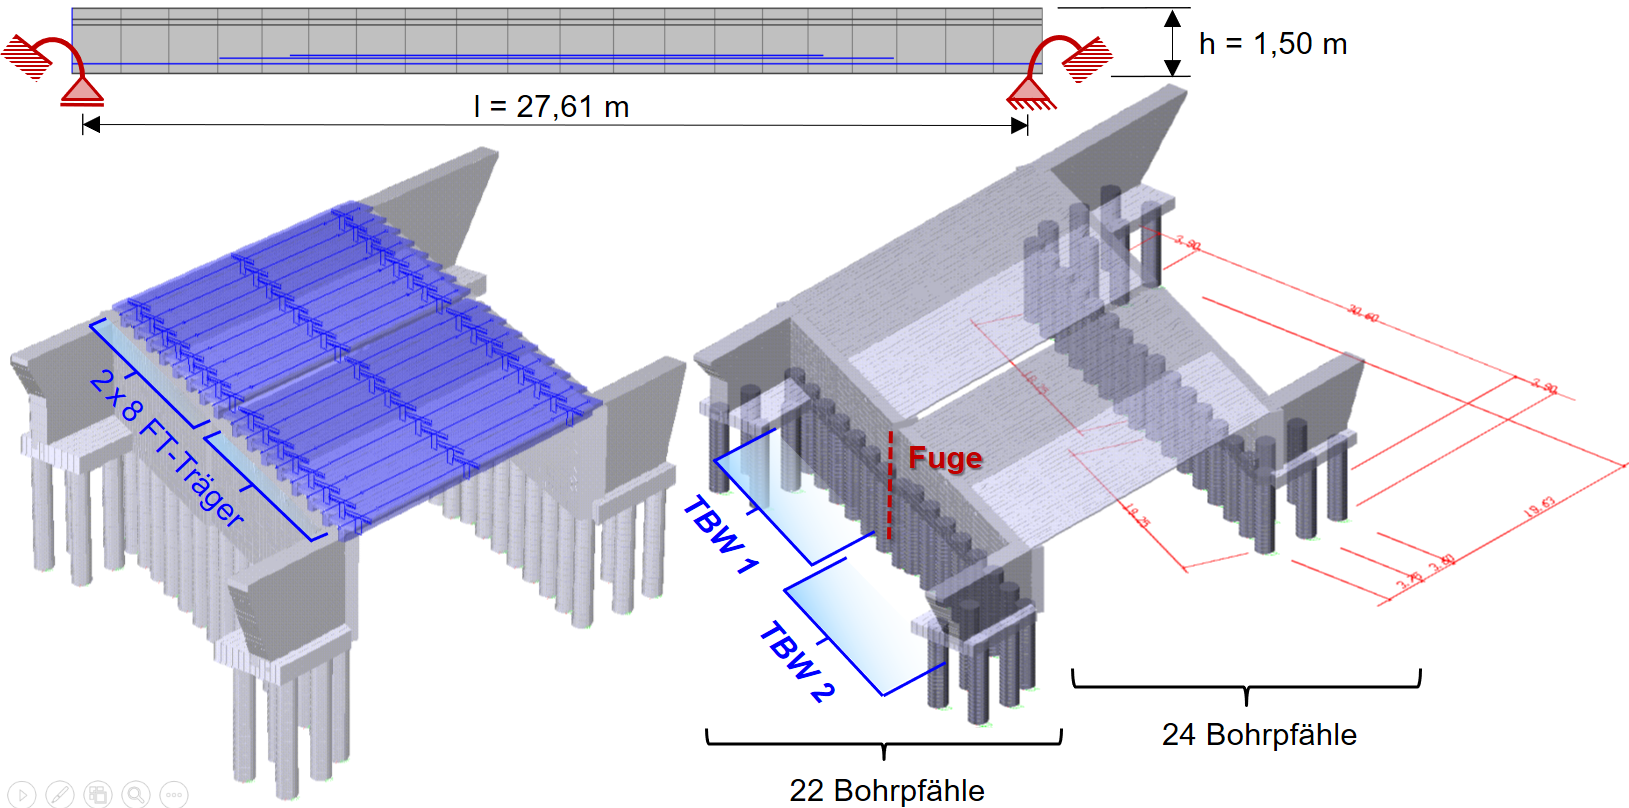 Bridge model as 3D system with pile foundation